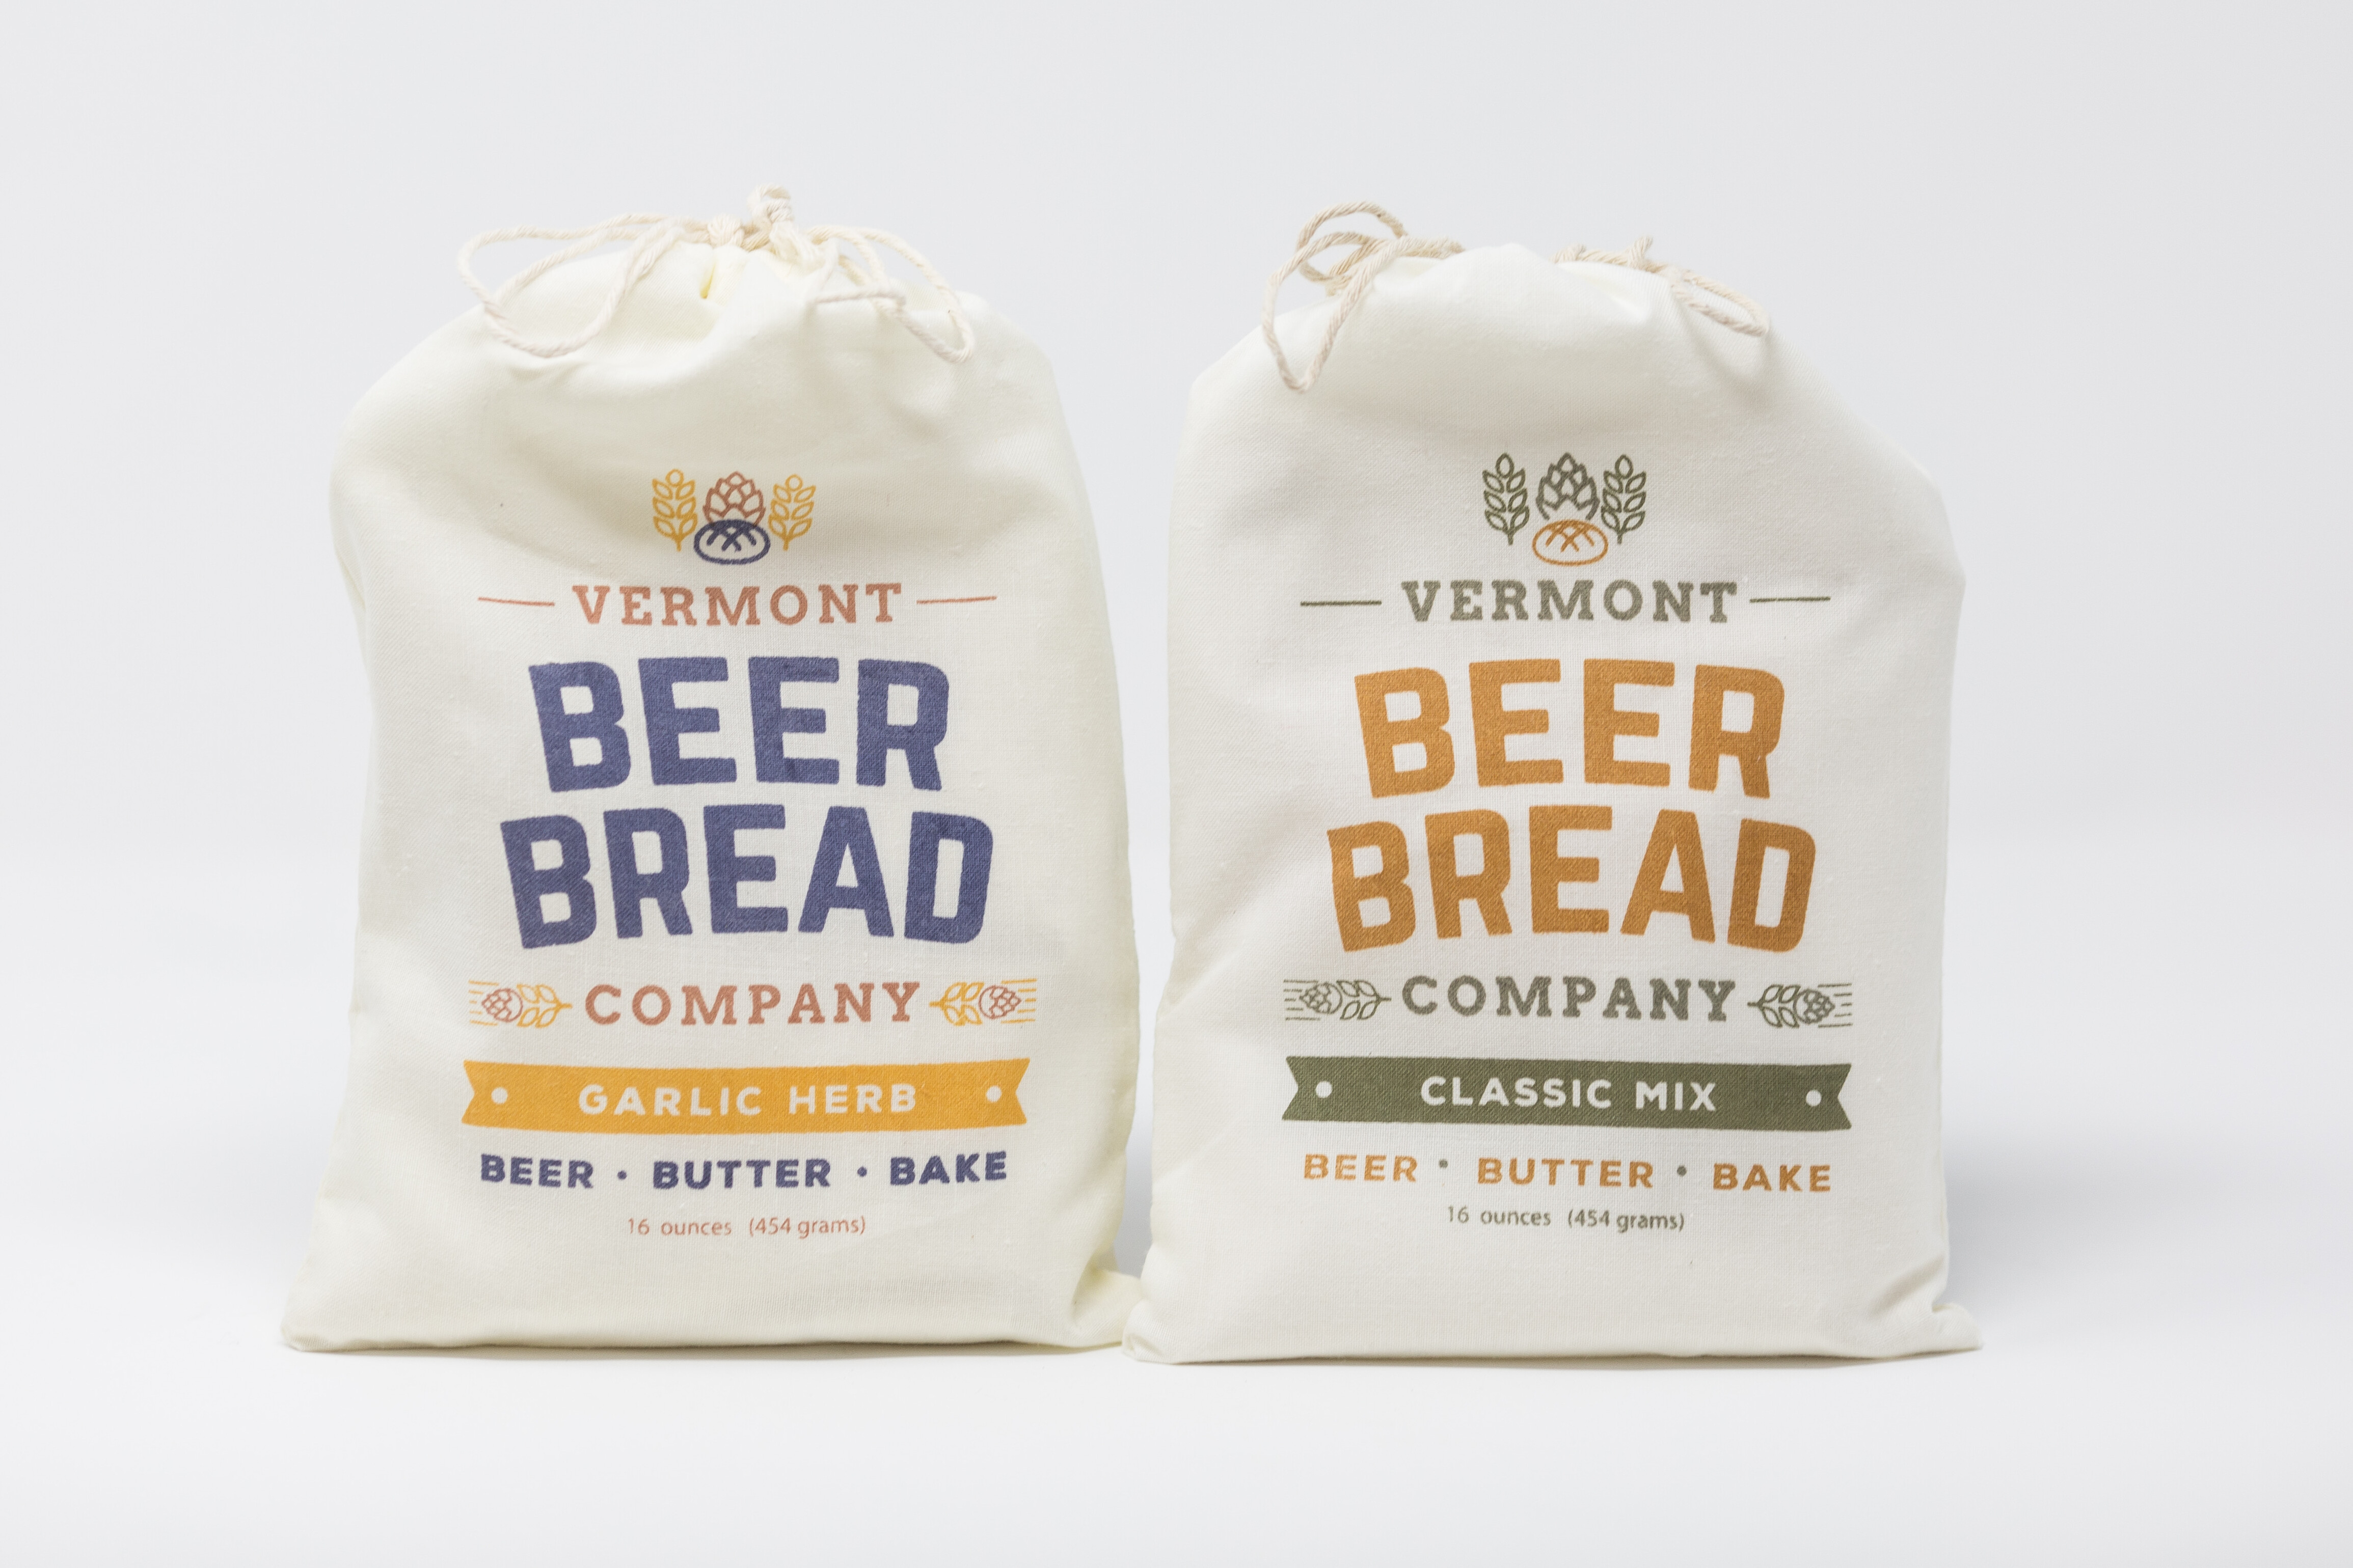 Vermont Beer Bread Company Pair with Drop-In Brewing Company, Red Dwarf American Amber Ale